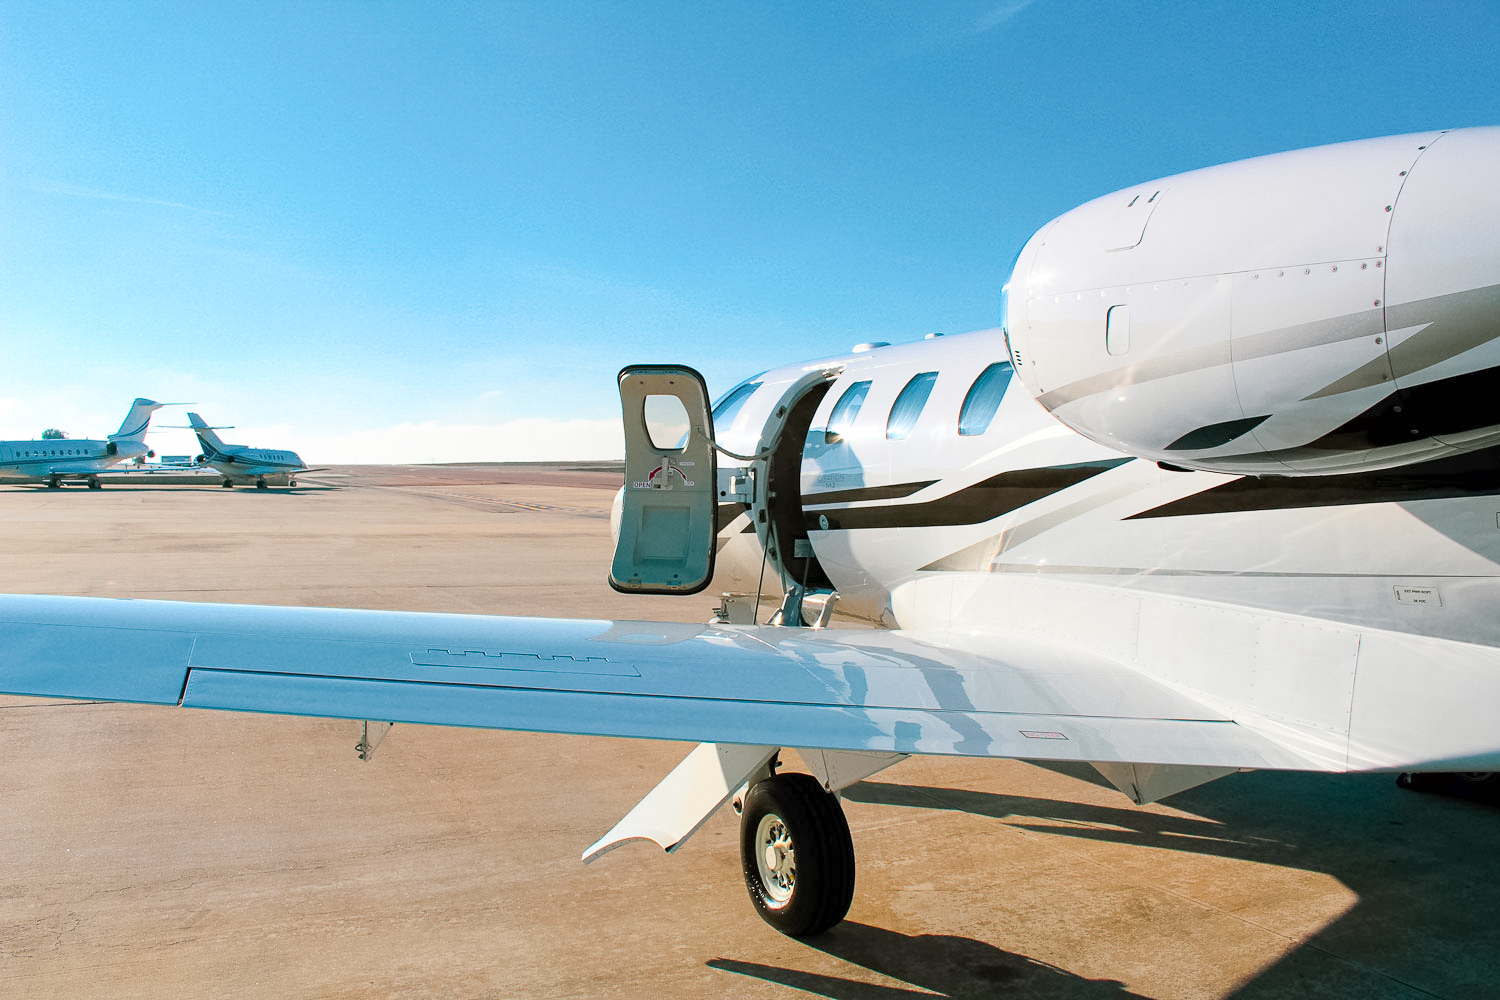 Cessna Citation M2 For Charter Exterior Aircraft Type with door open